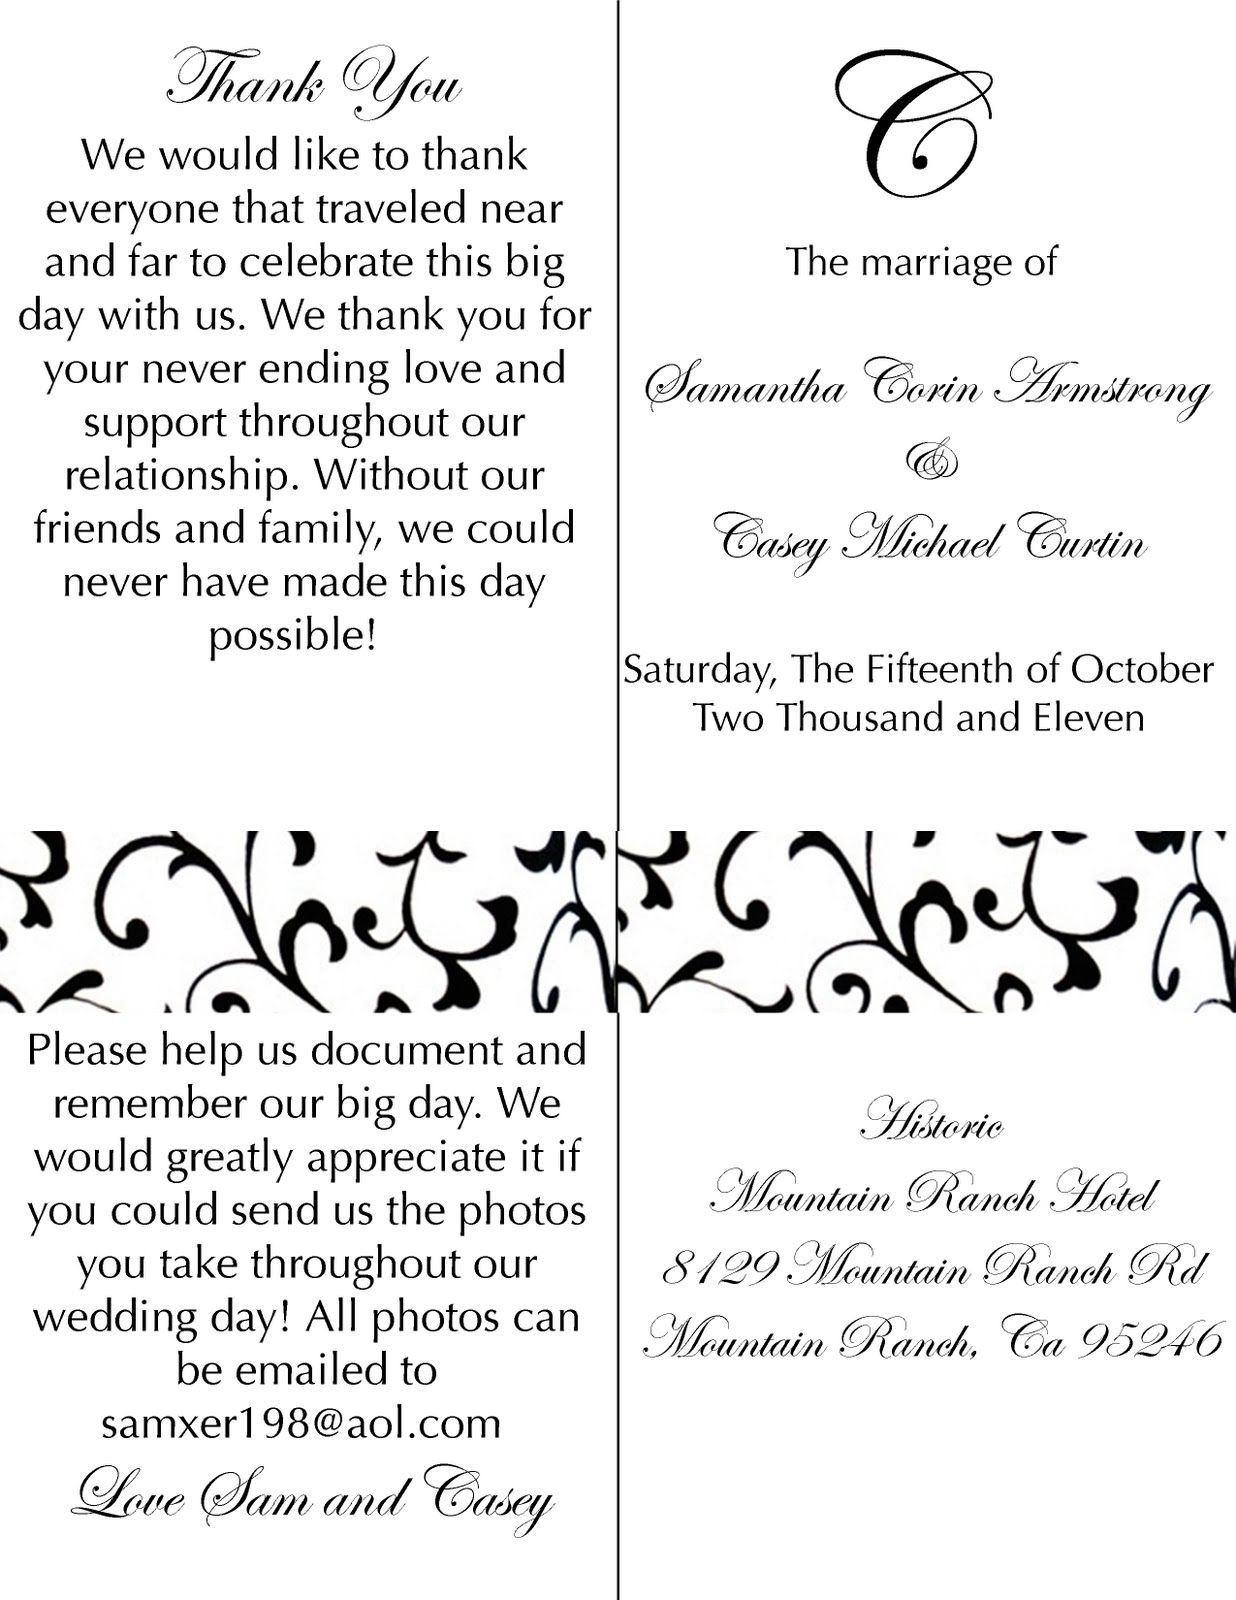 diy wedding programs front and back covers for sammykins